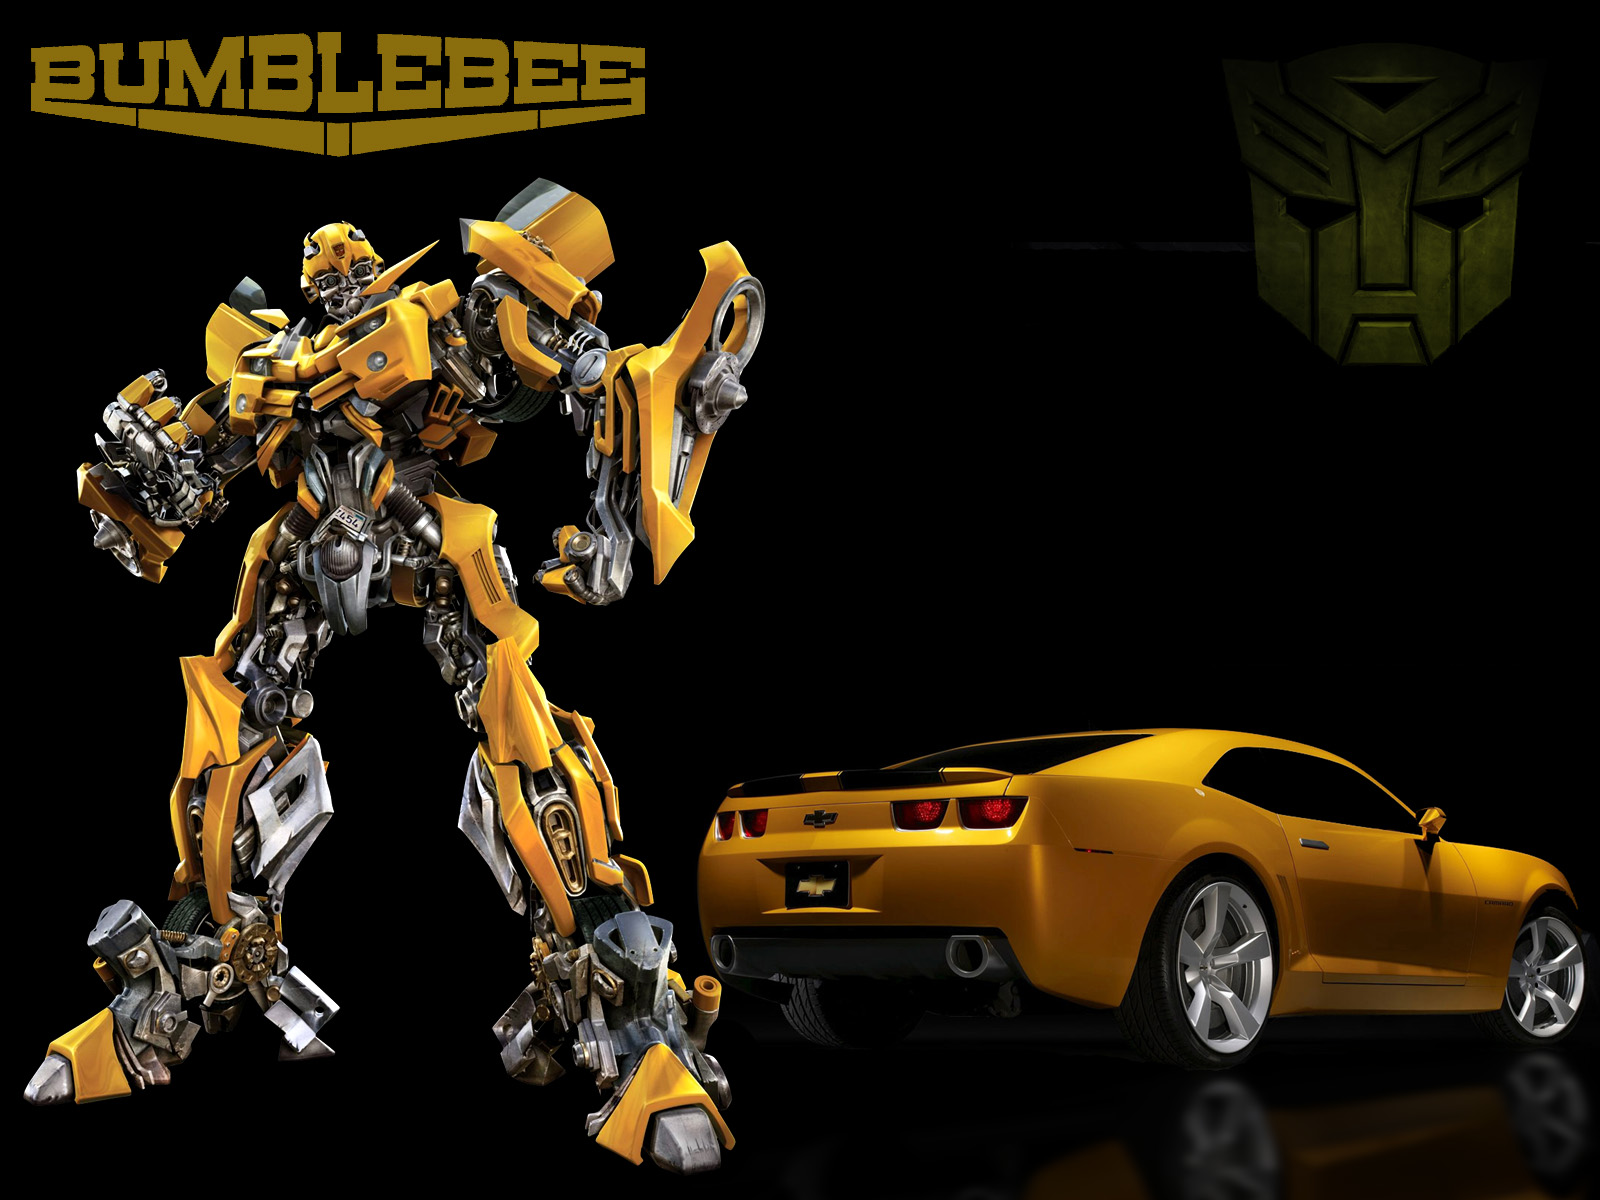 Chevy camaro chevrolet camaro transformers bumblebee edition - Images of bumblebee from transformers ...